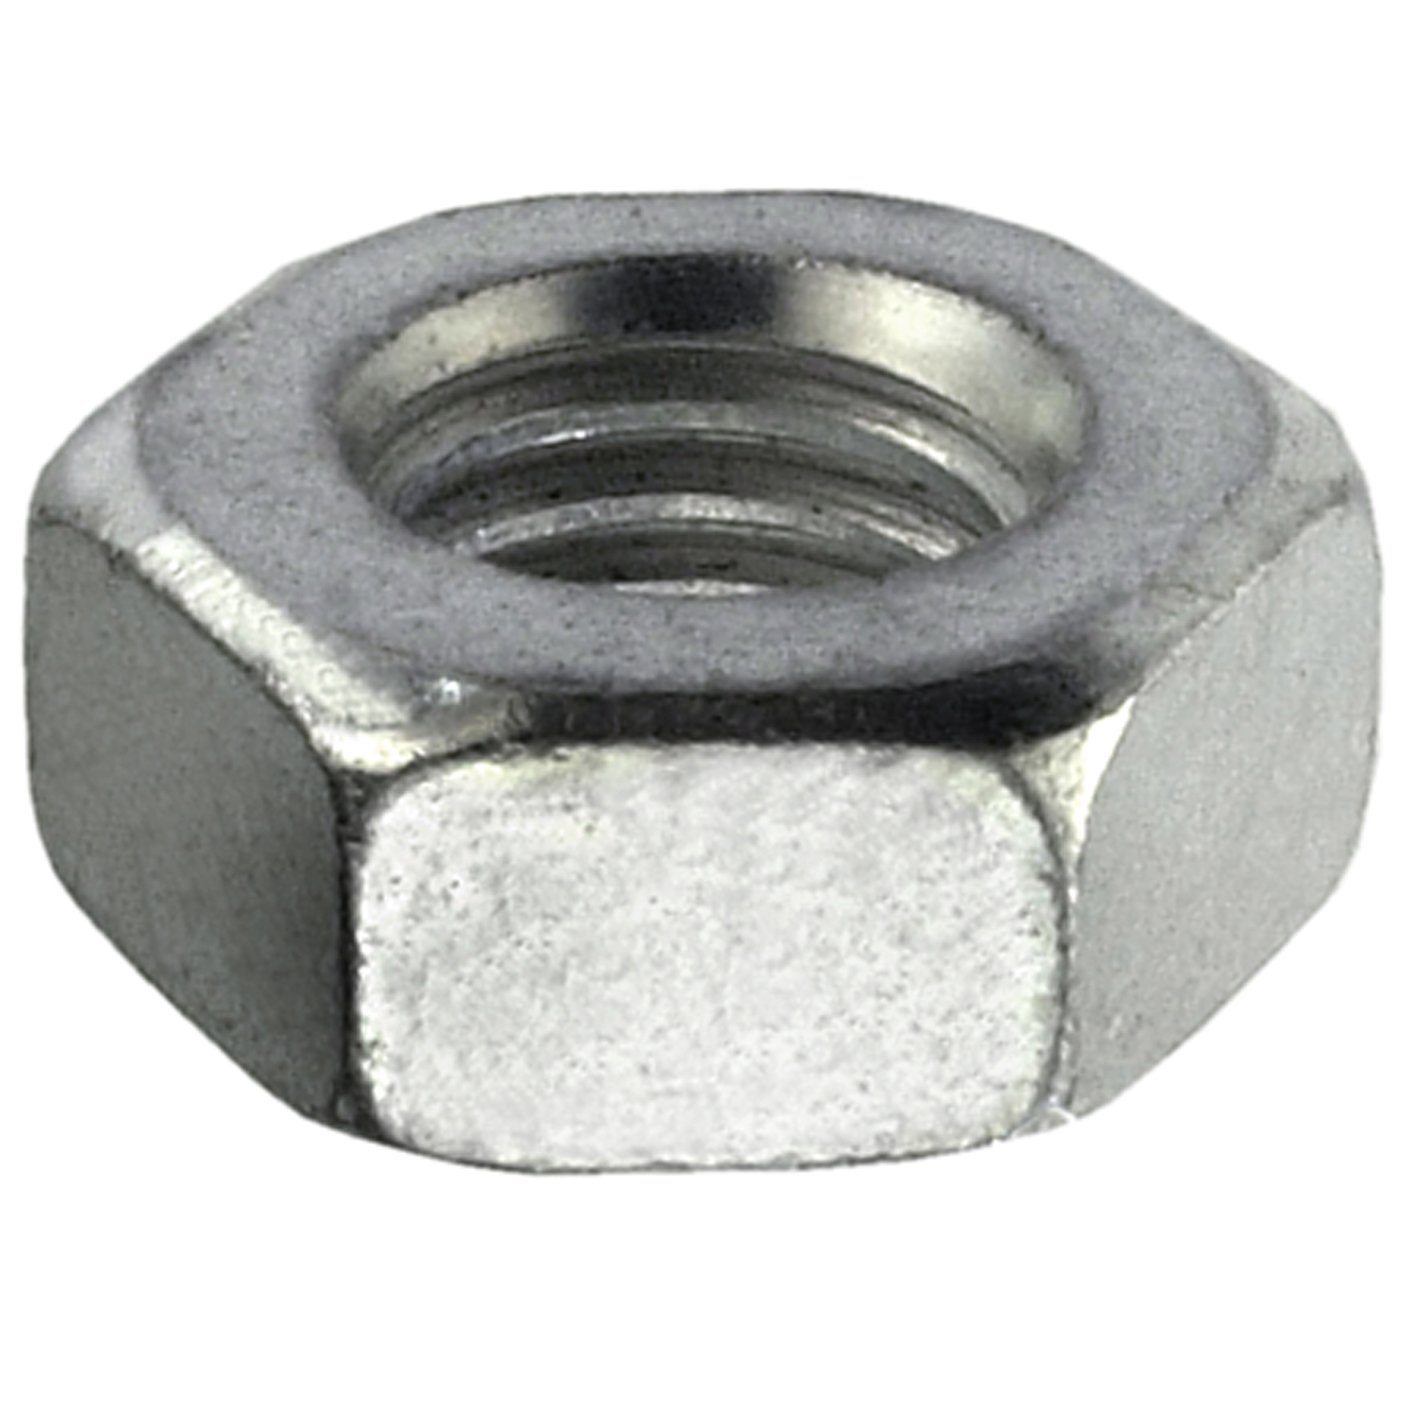 Max-Power klin00360Stainless Hex Nuts M6, 1kg, Blue